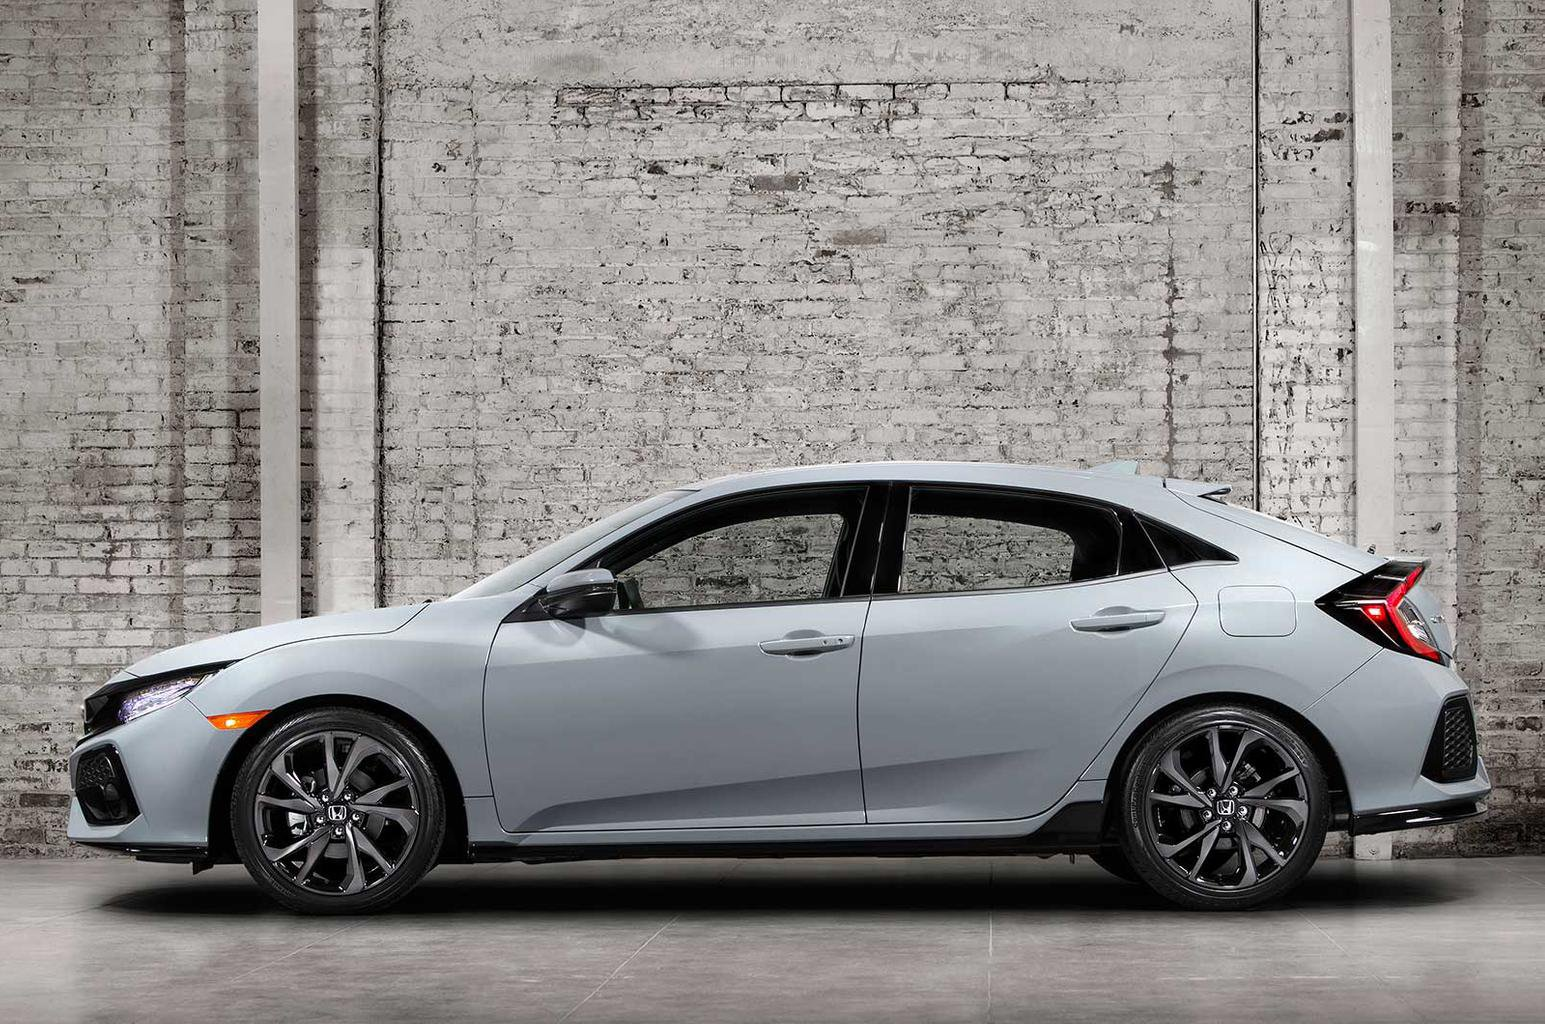 2017 Honda Civic revealed